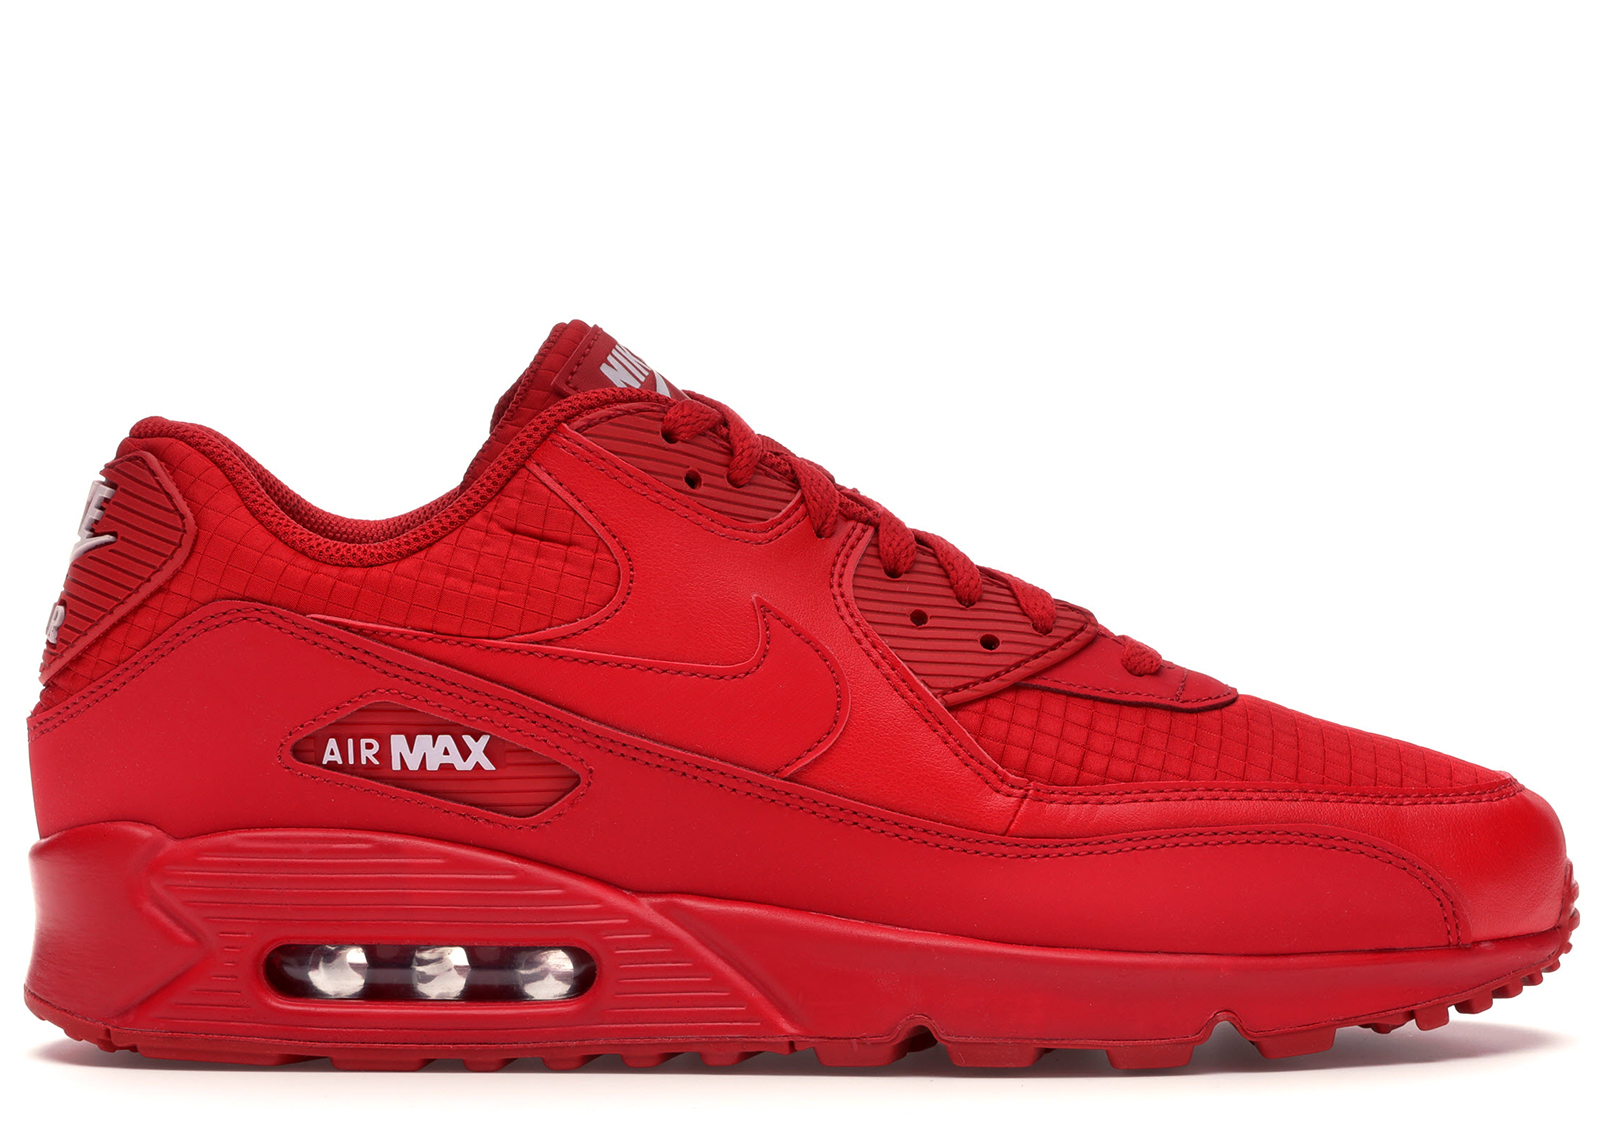 Buy Nike Air Max 90 Shoes & Deadstock Sneakers